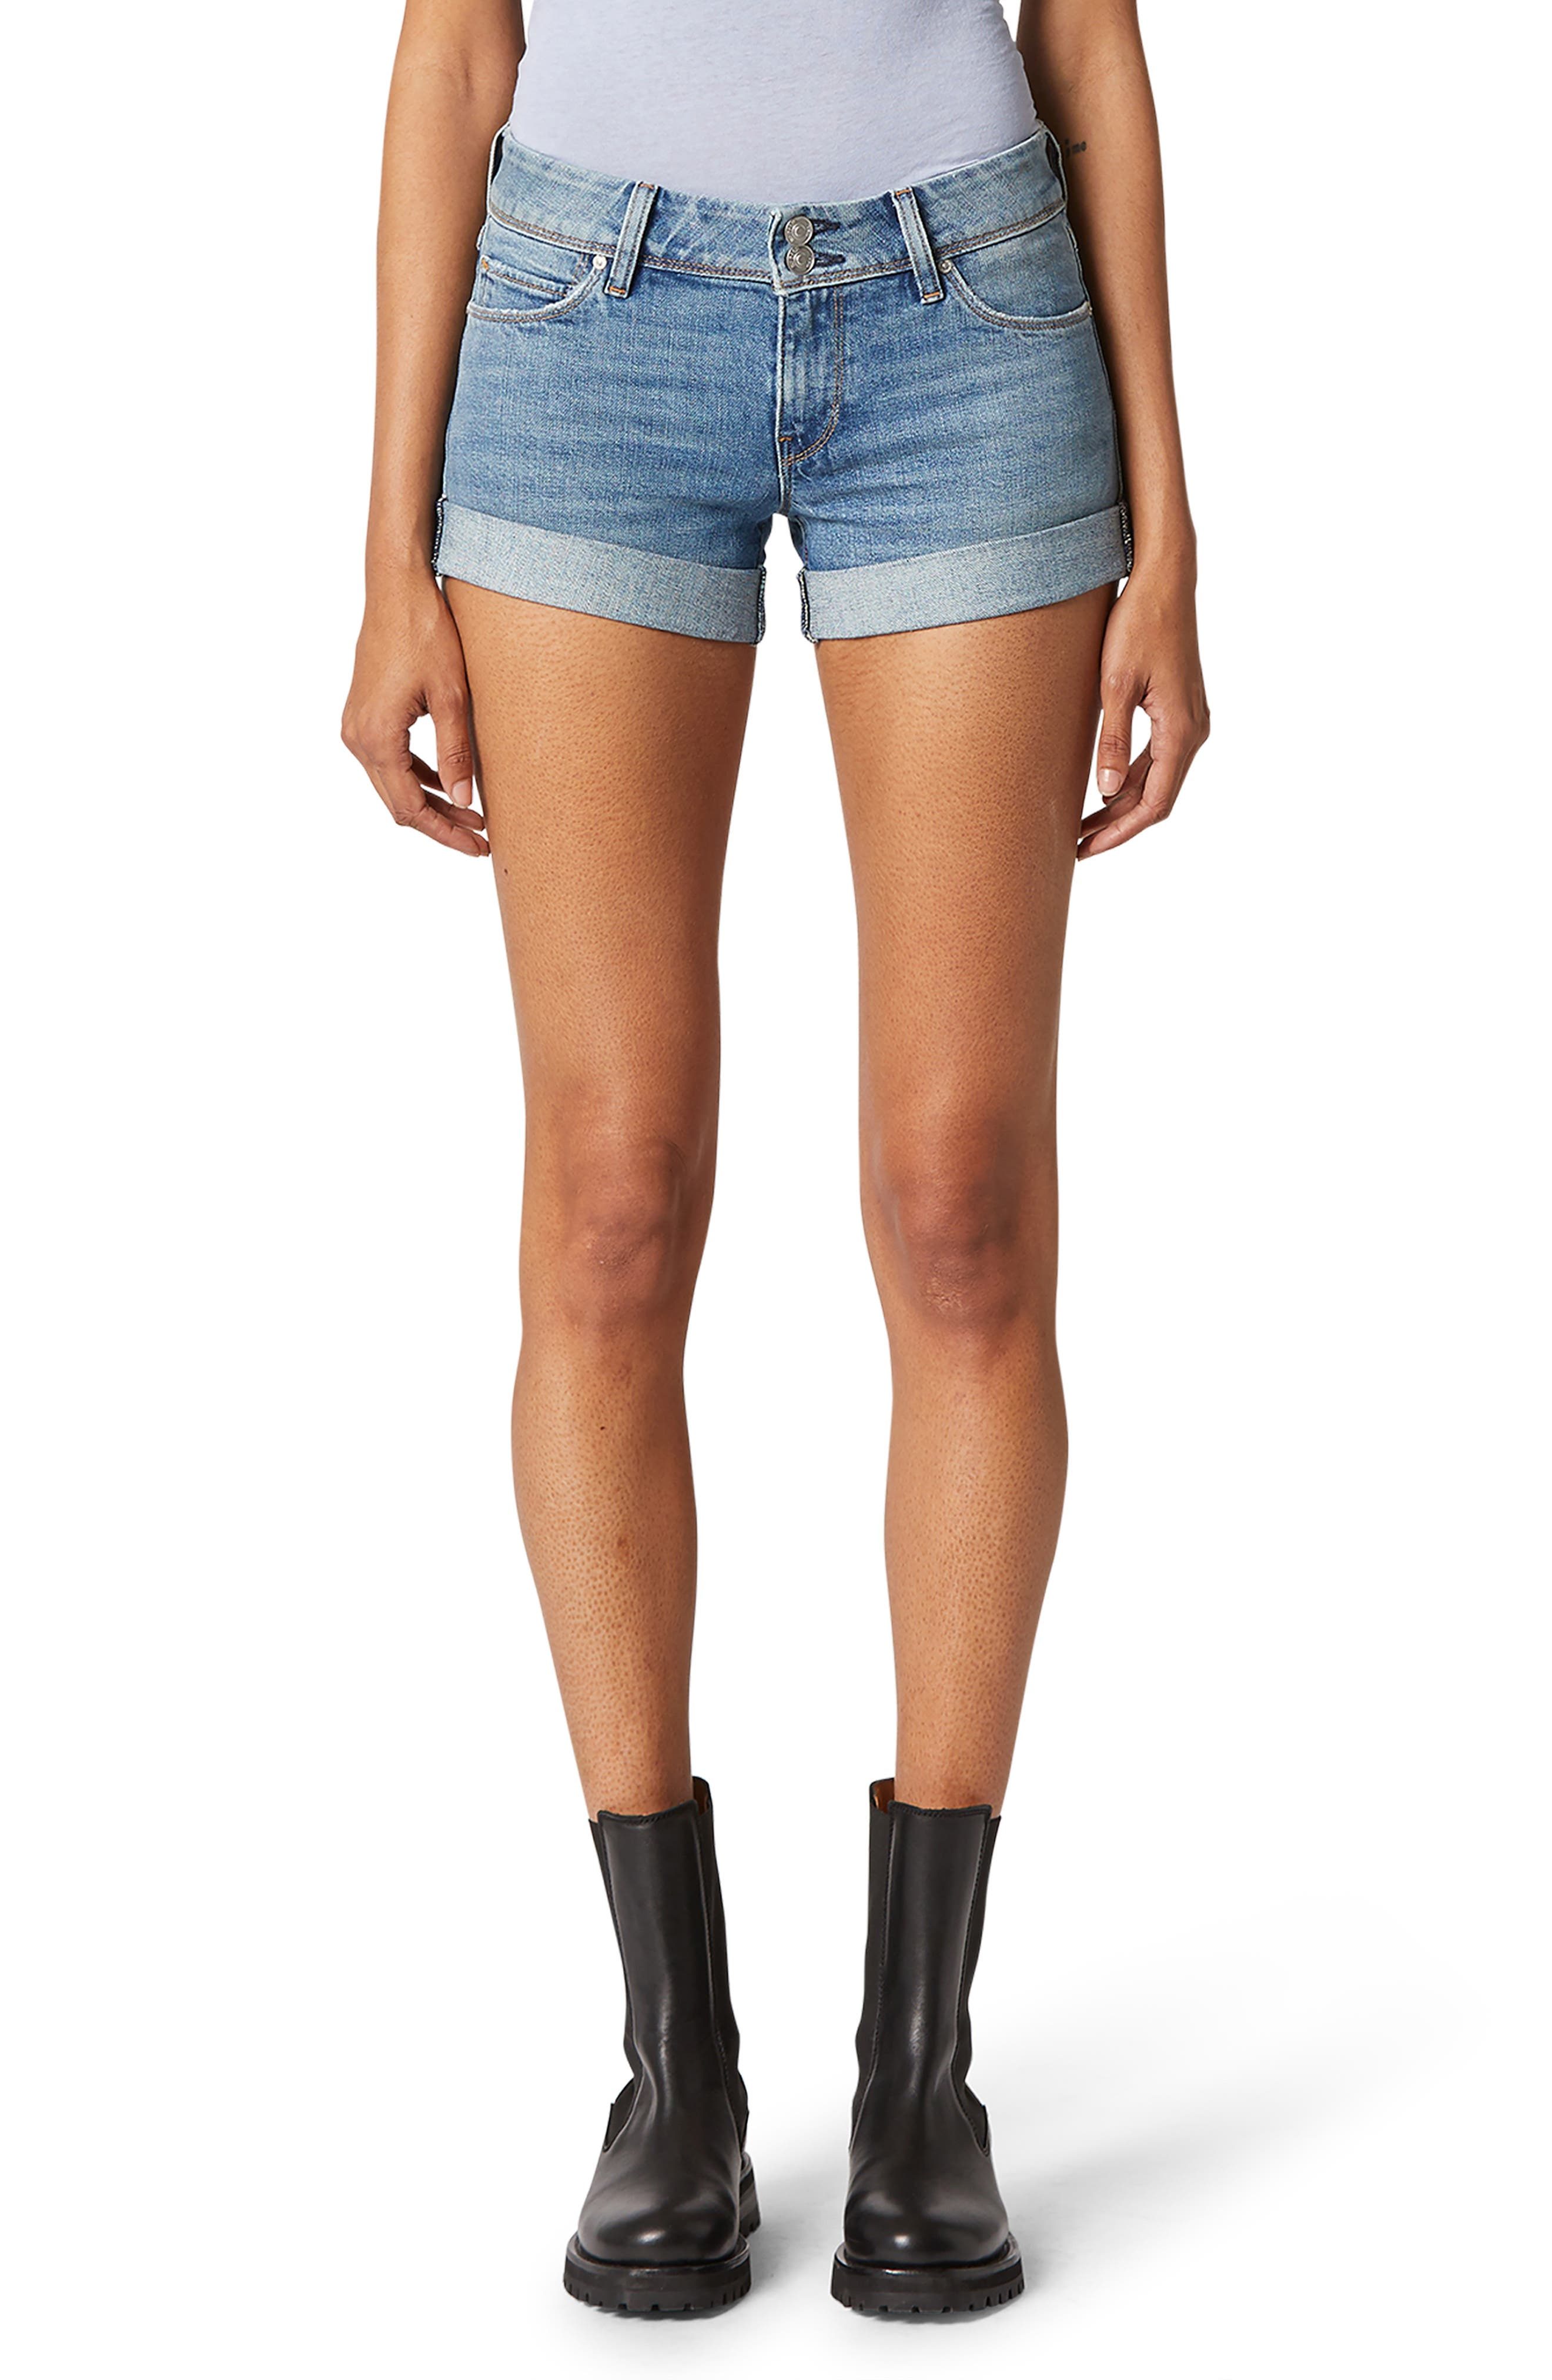 You\\\'ll be ready for warm-weather fun in easygoing cuffed denim shorts finished with signature triangle-flap back pockets. Style Name: Hudson Jeans Croxley Cuff Denim Shorts (Reaction). Style Number: 6011111. Available in stores.